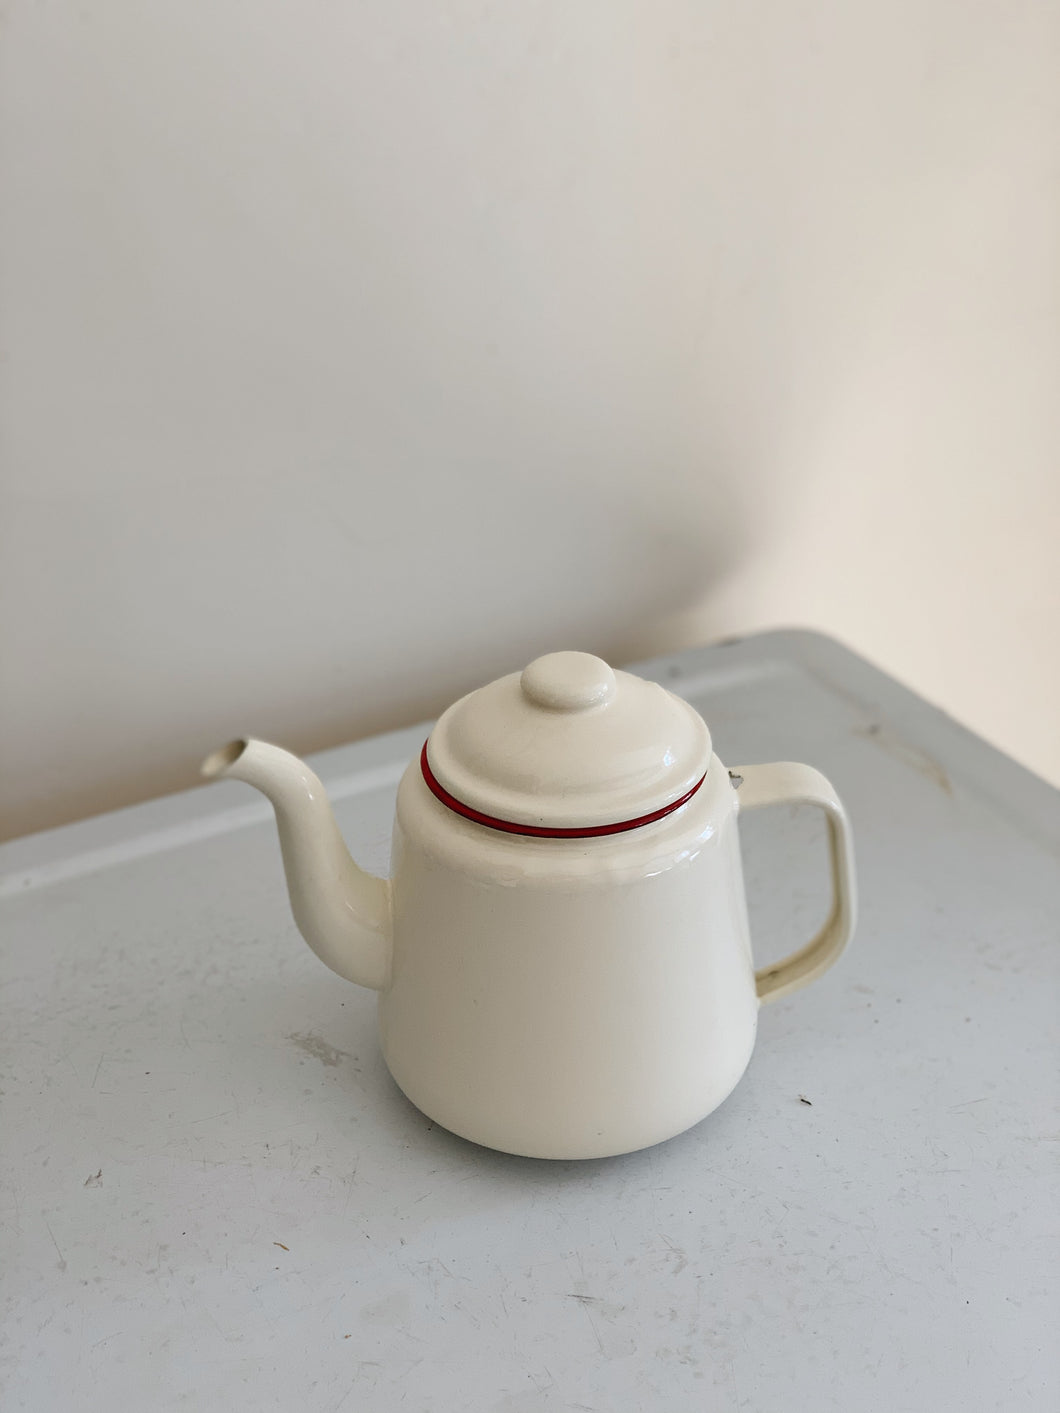 ENAMEL TEAPOT CREAM AND RED